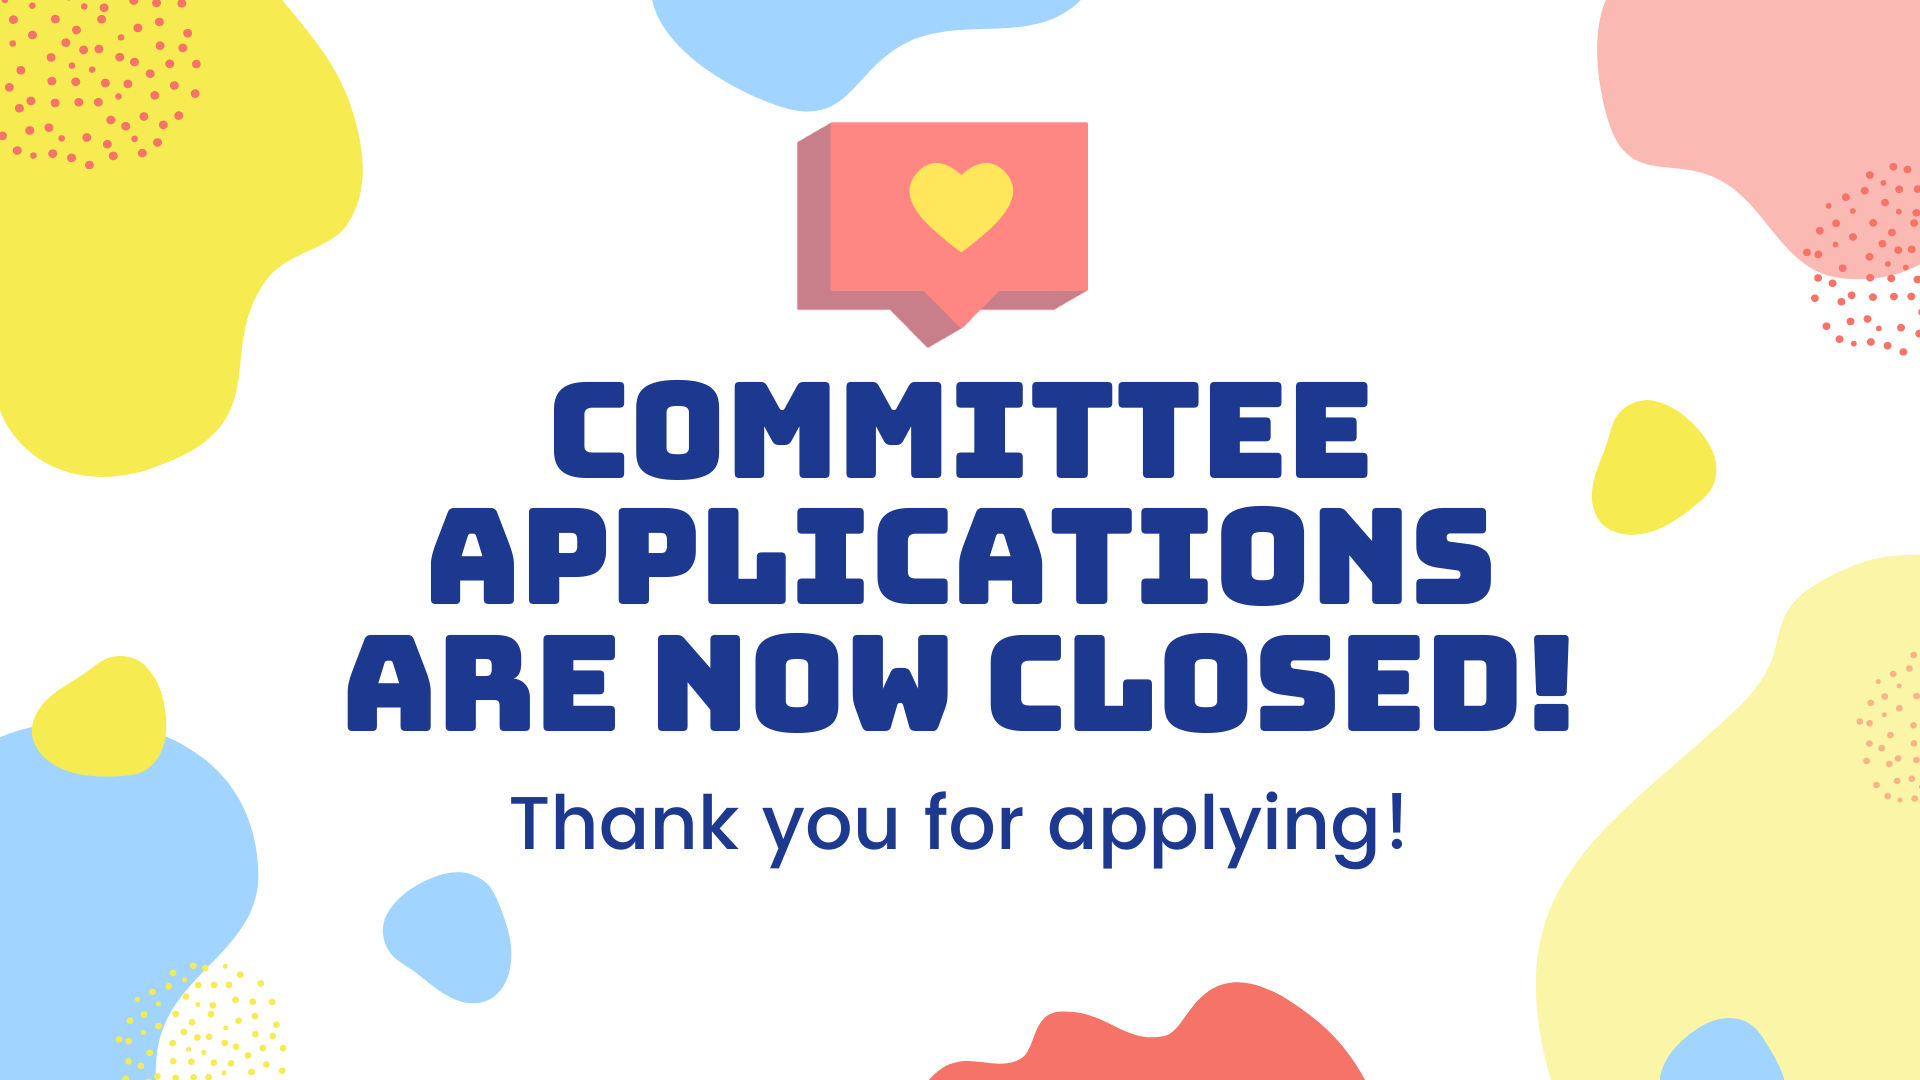 Committee applications are closed!